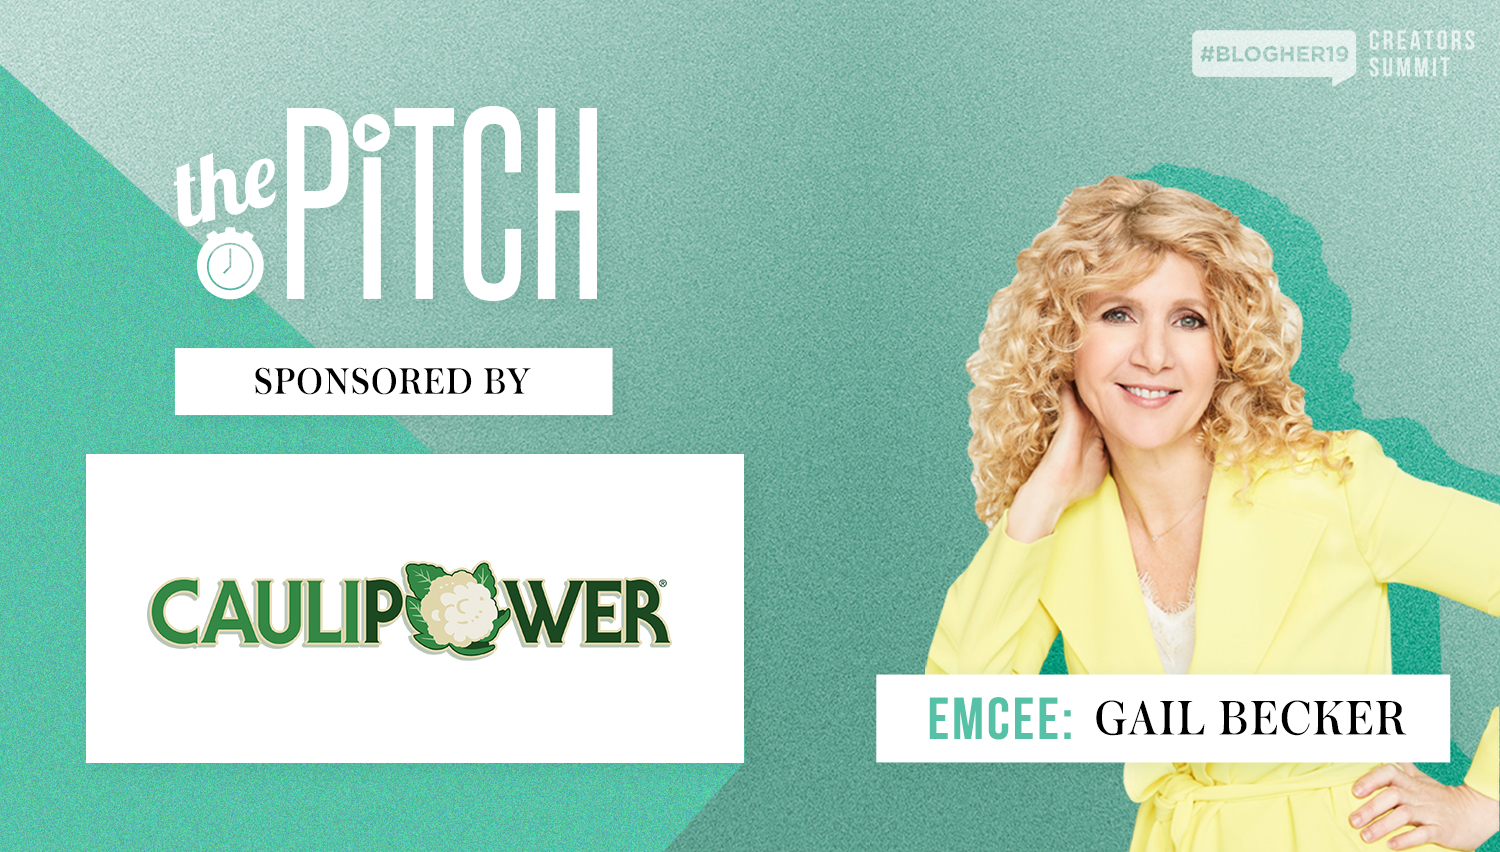 Looking forward to The Pitch? Get to know our Emcee and Judges! - Gail Becker of CAULIPOWER, Jacquelyn De Jesu, Agatha Achindu, Sarika Doshi, Alison Wyatt Koplar, Cate Luzio, and join us for The Pitch at #BlogHer19 Creators Summit.